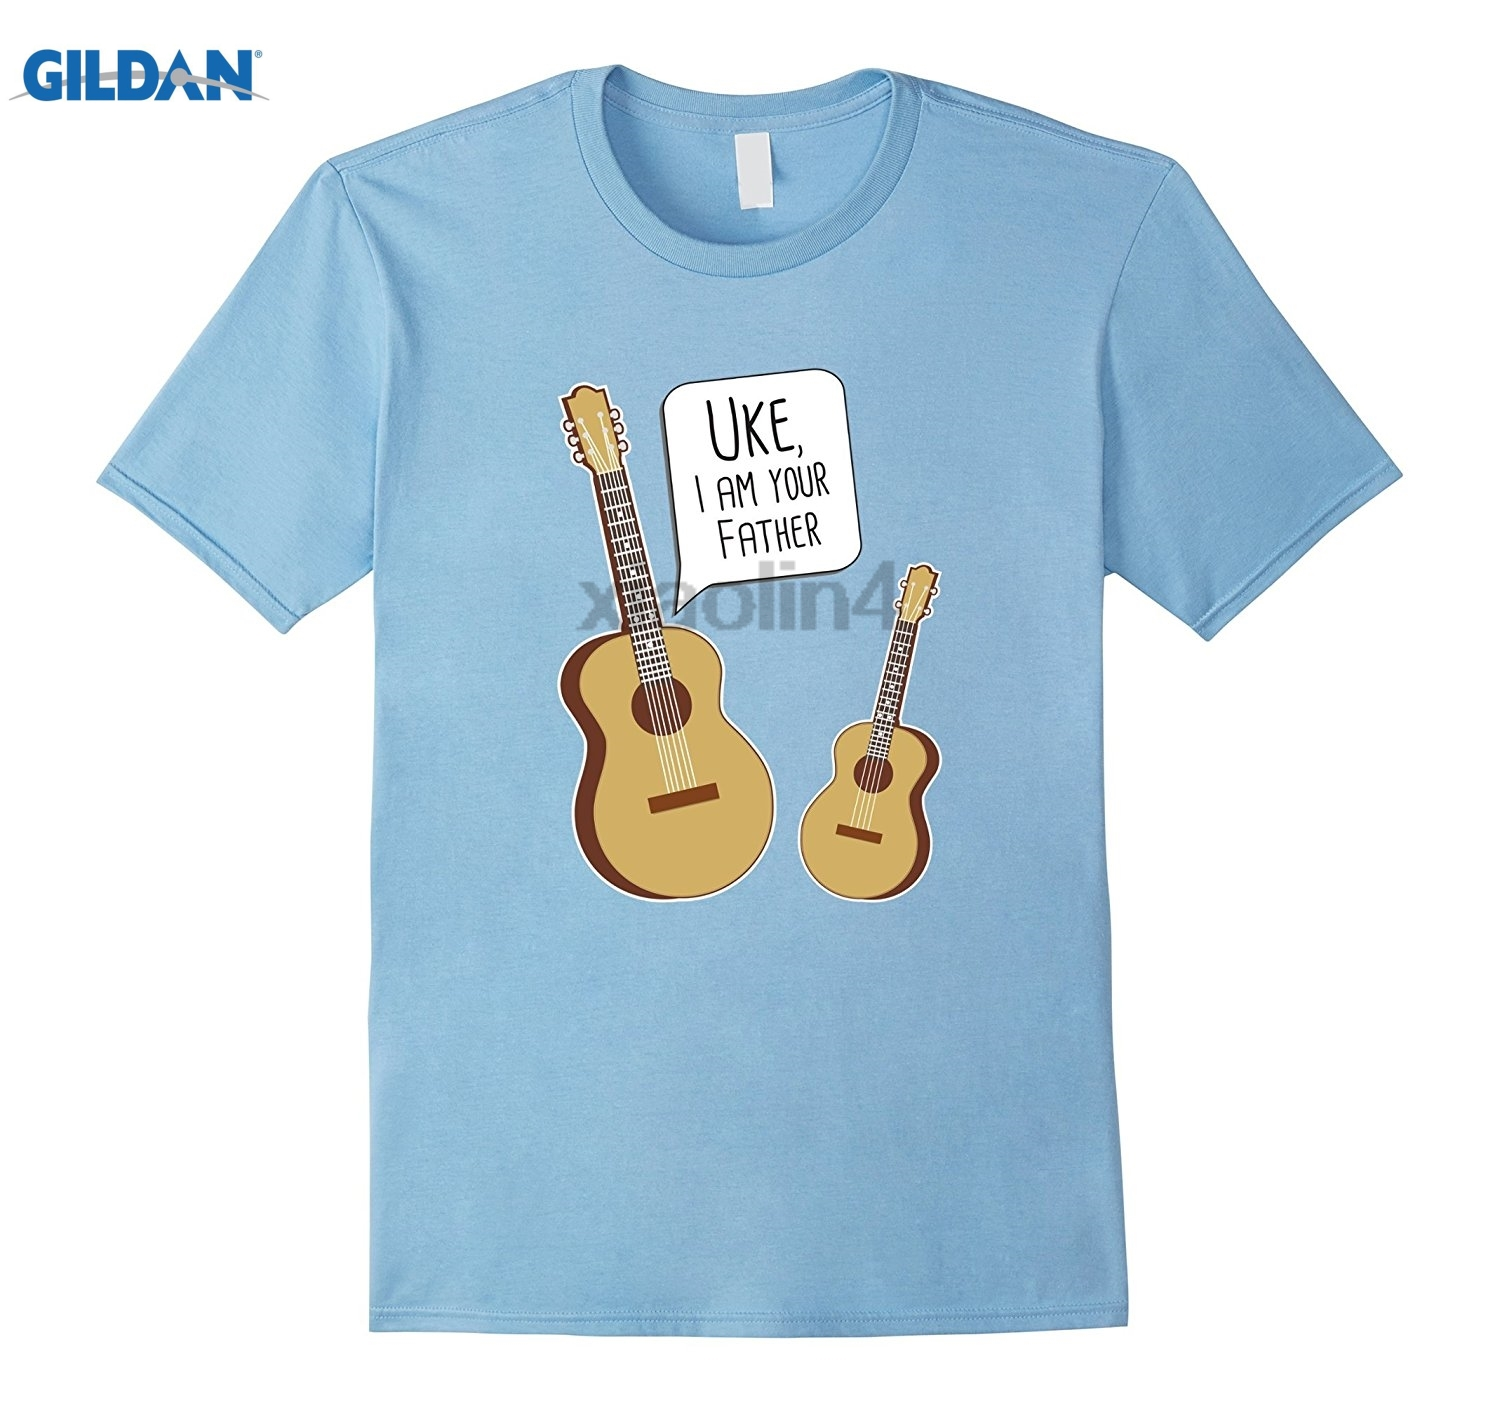 GILDAN Uke I Am Your Father - Funny Guitar and Ukulele Shirt Adult T-shirt Pattern Mothers Day Ms. T-shirt